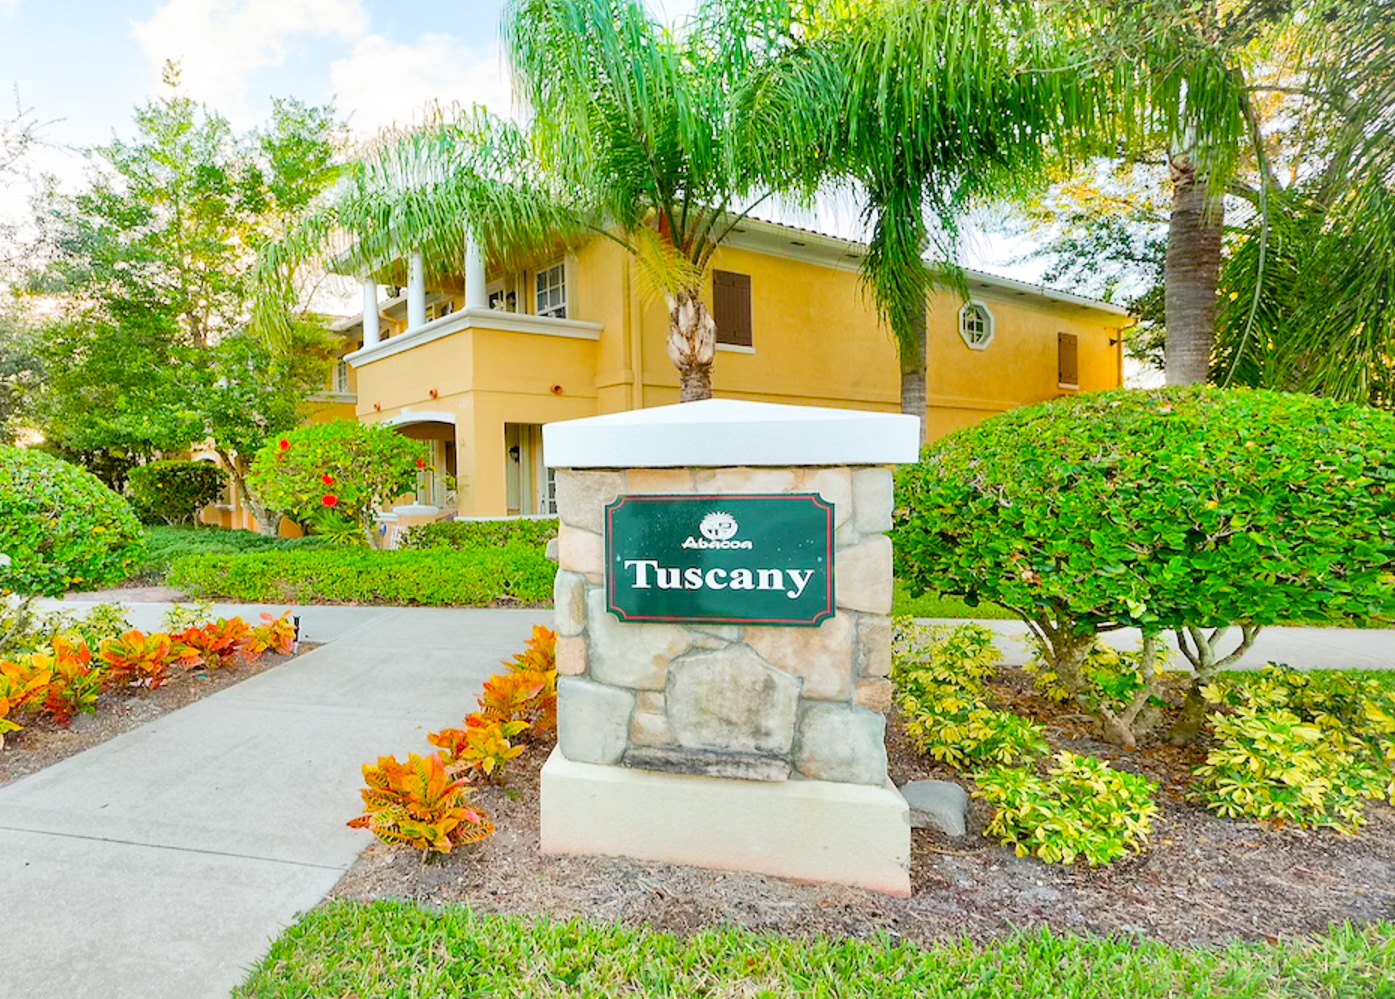 Tuscany Homes for Sale in Jupiter, FL 33458 community image